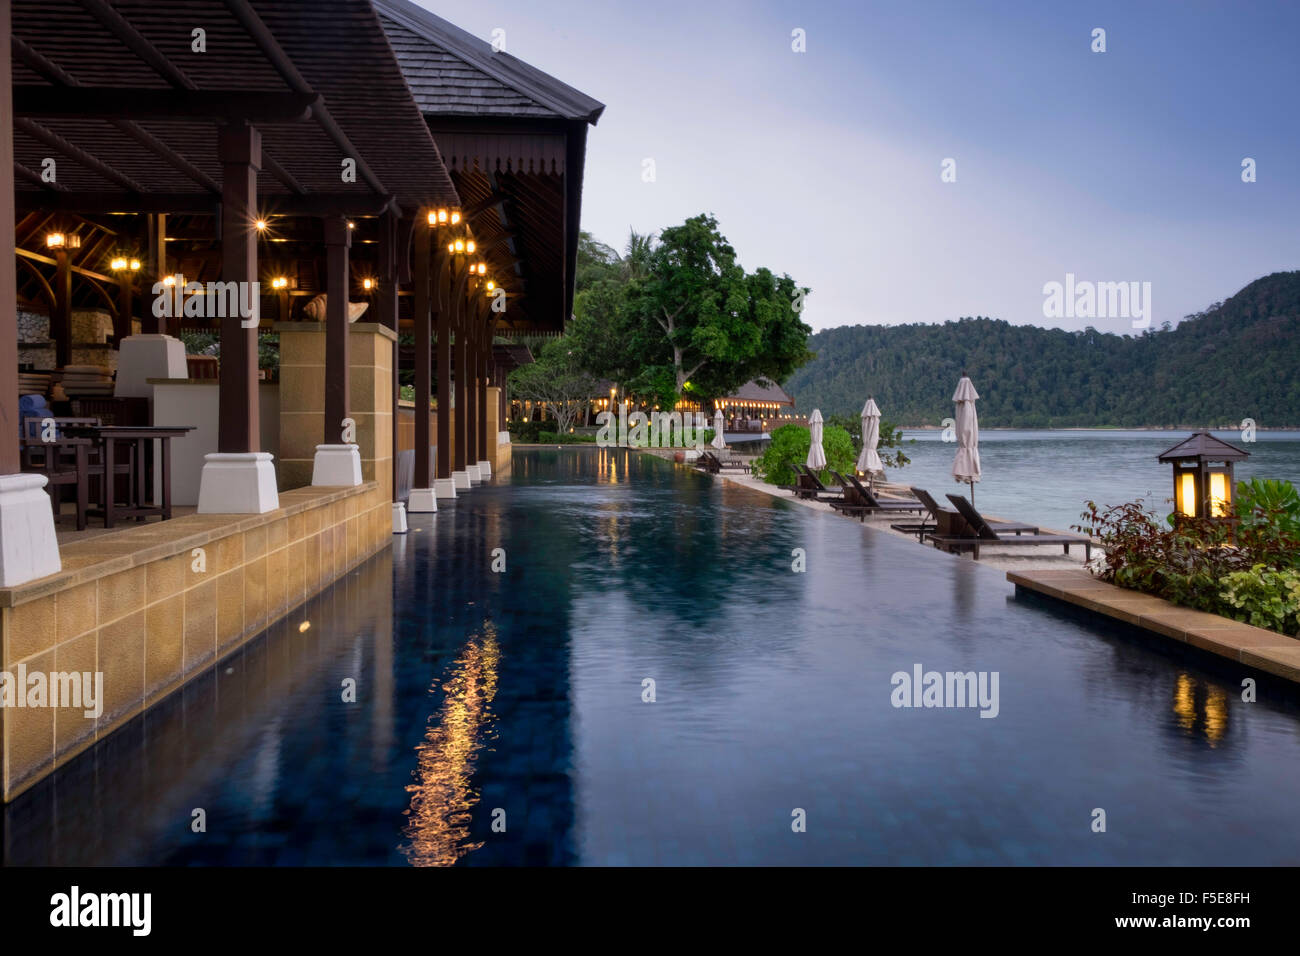 Swimming pool at the luxury resort and spa of Pangkor Laut, Malaysia, Southeast Asia, Asia Stock Photo